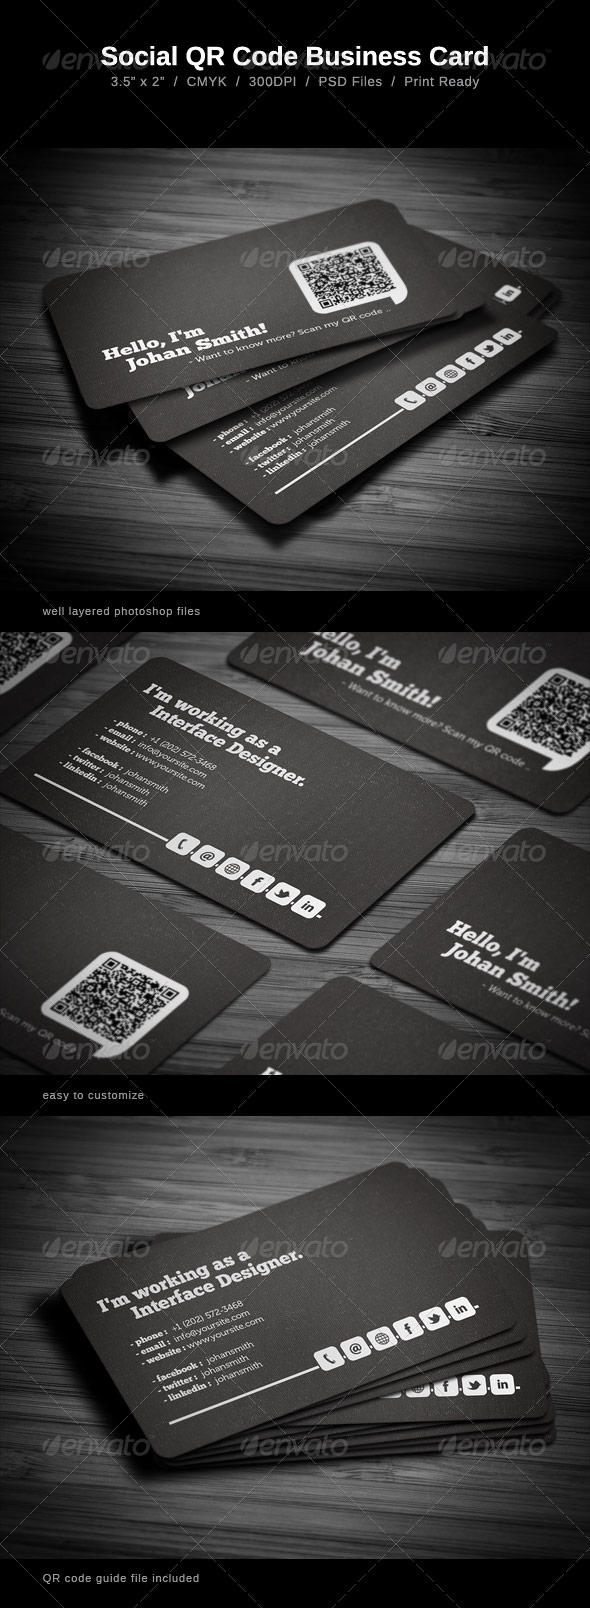 5 noteworthy back of business cards ideas business card qr back of card template reheart Images